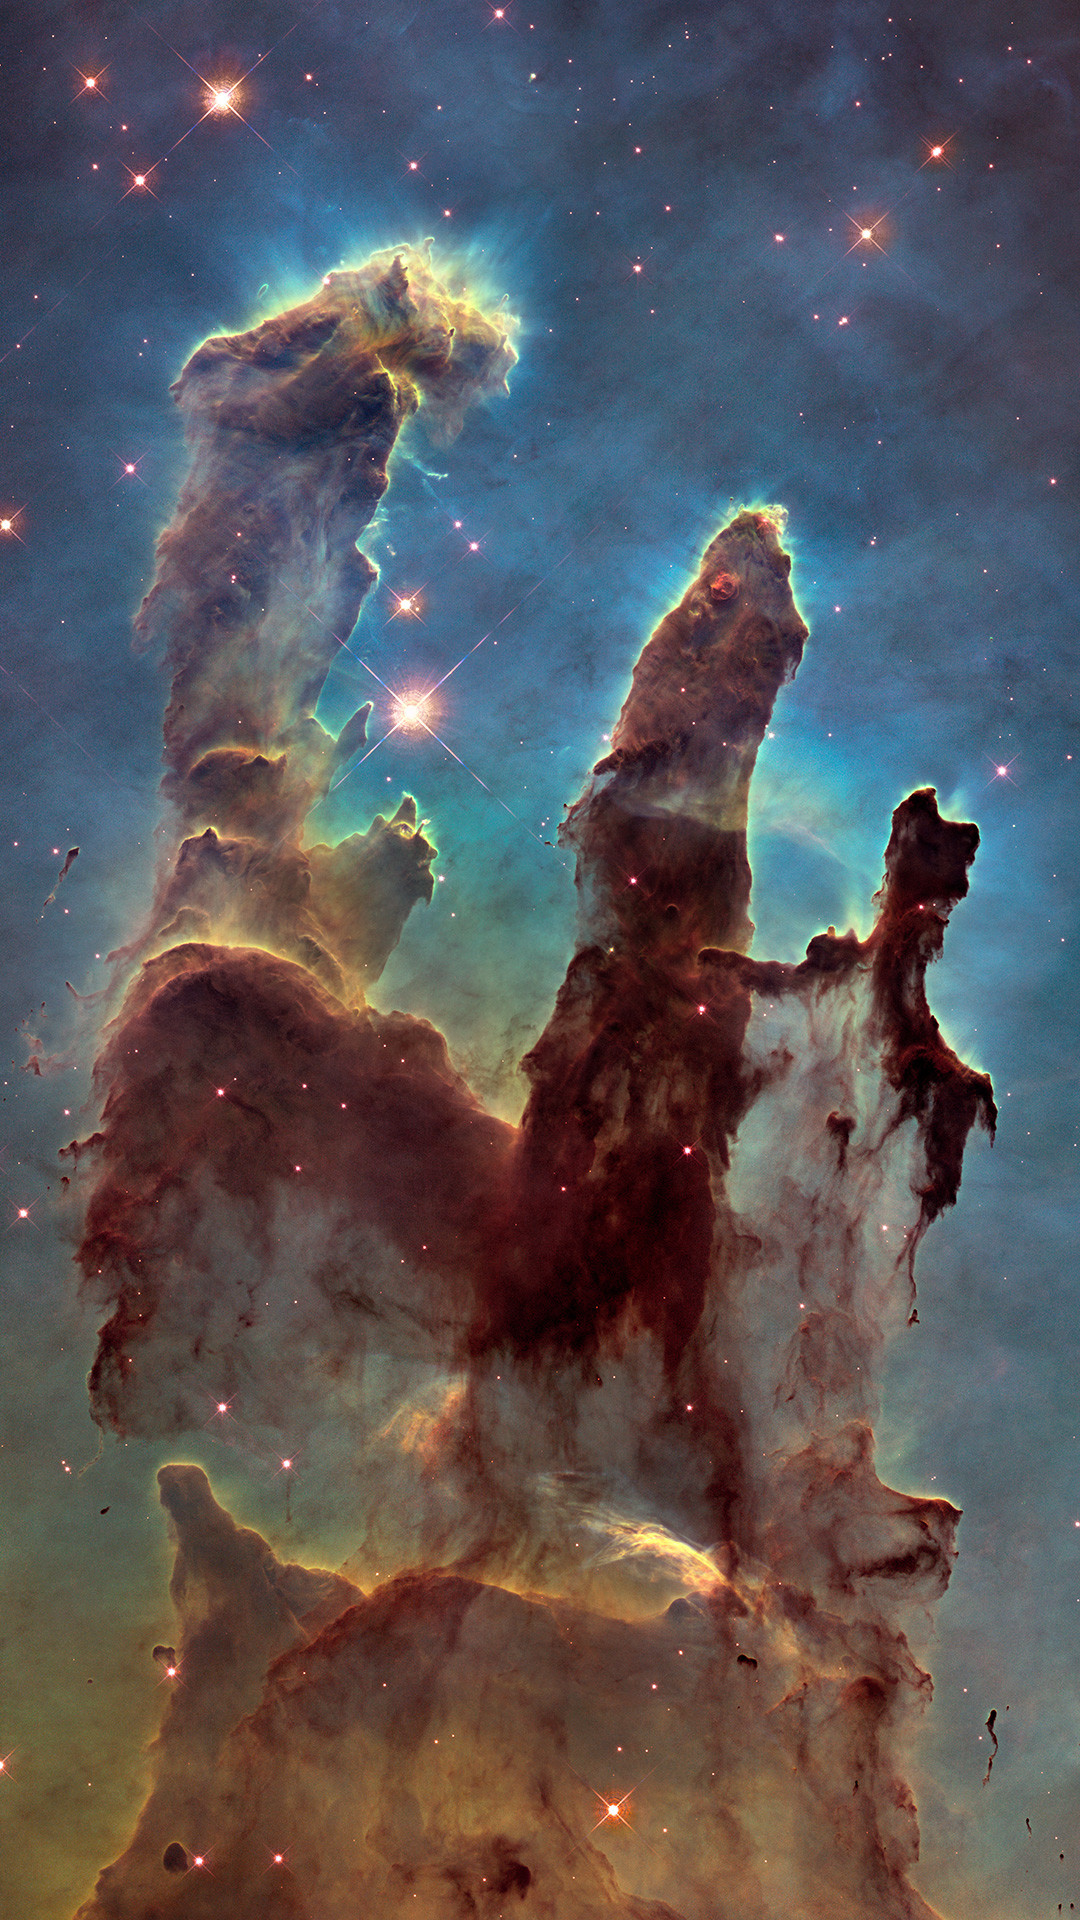 eagle nebula wallpaper hd (63+ images)